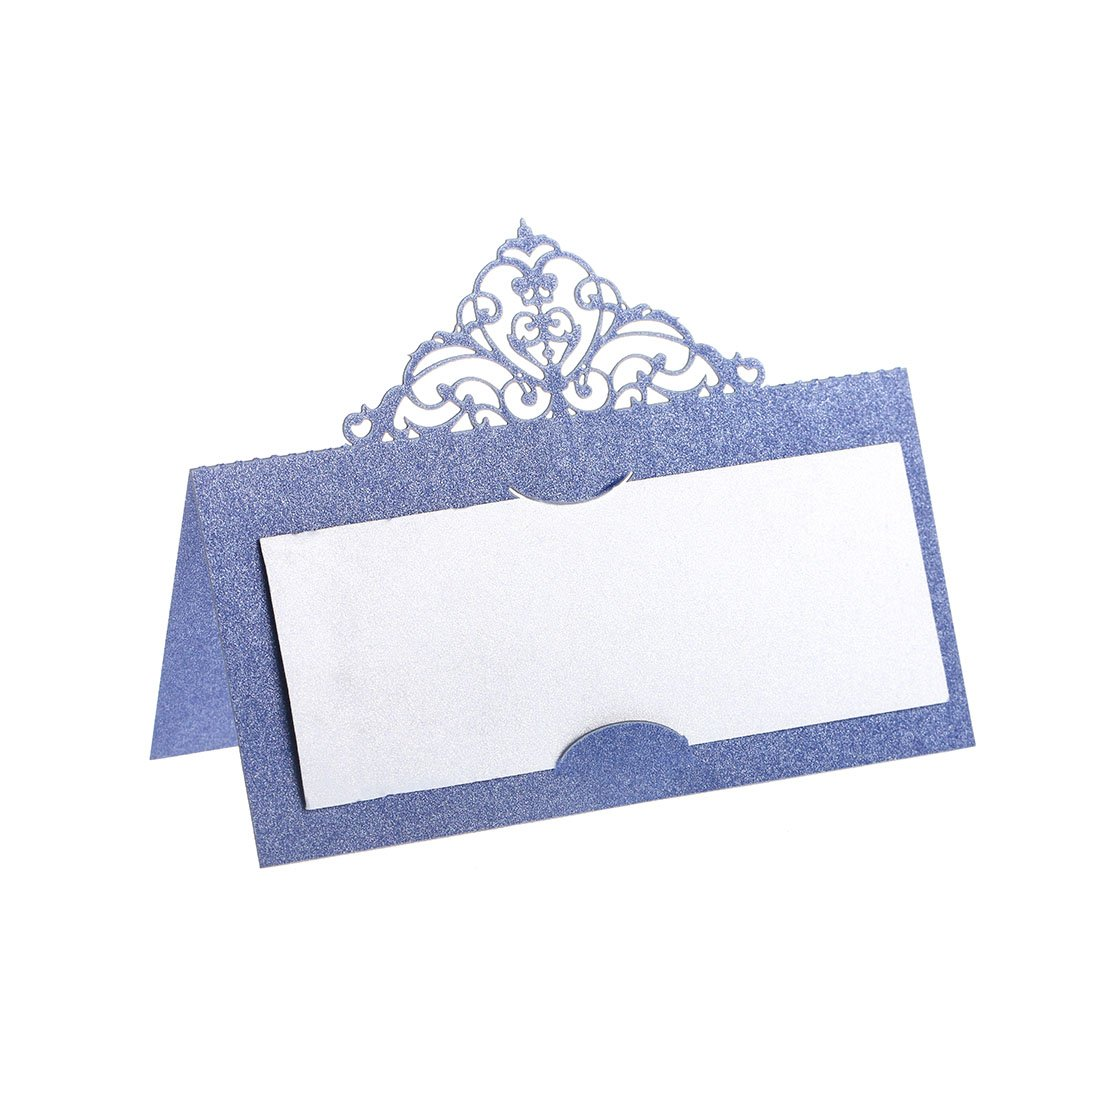 YUFENG Laser Cut Place Cards Table Name Cards For Wedding Birthday Party (60pcs blue) by YUFENG